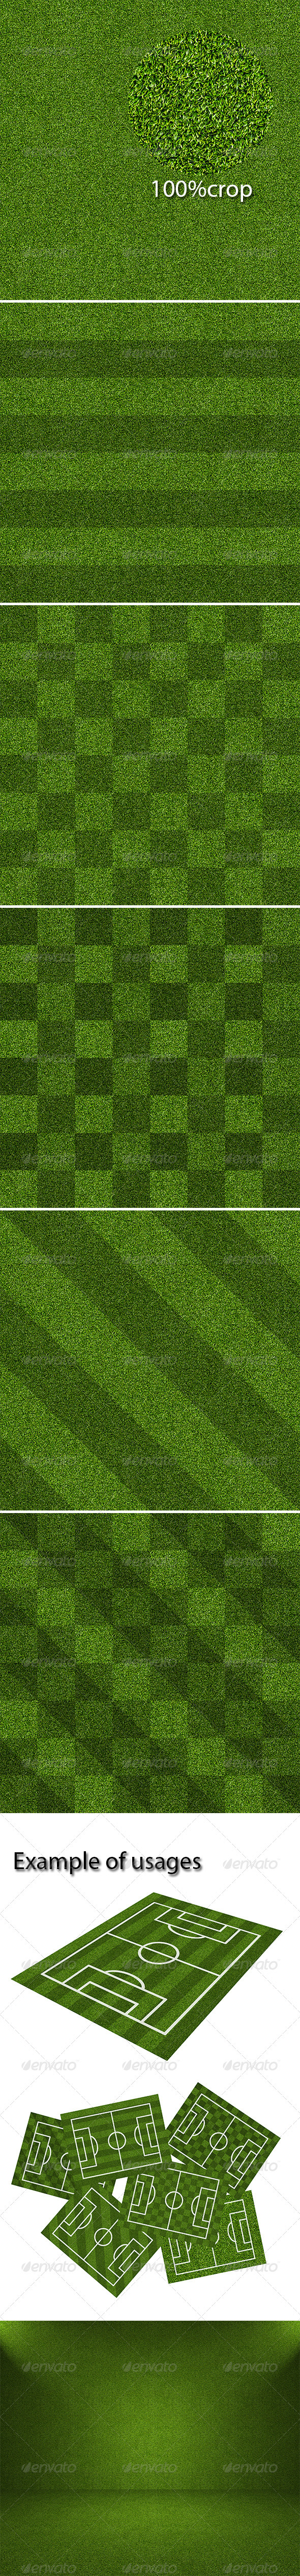 6 Packs Artificial Grass Texture - 3DOcean Item for Sale